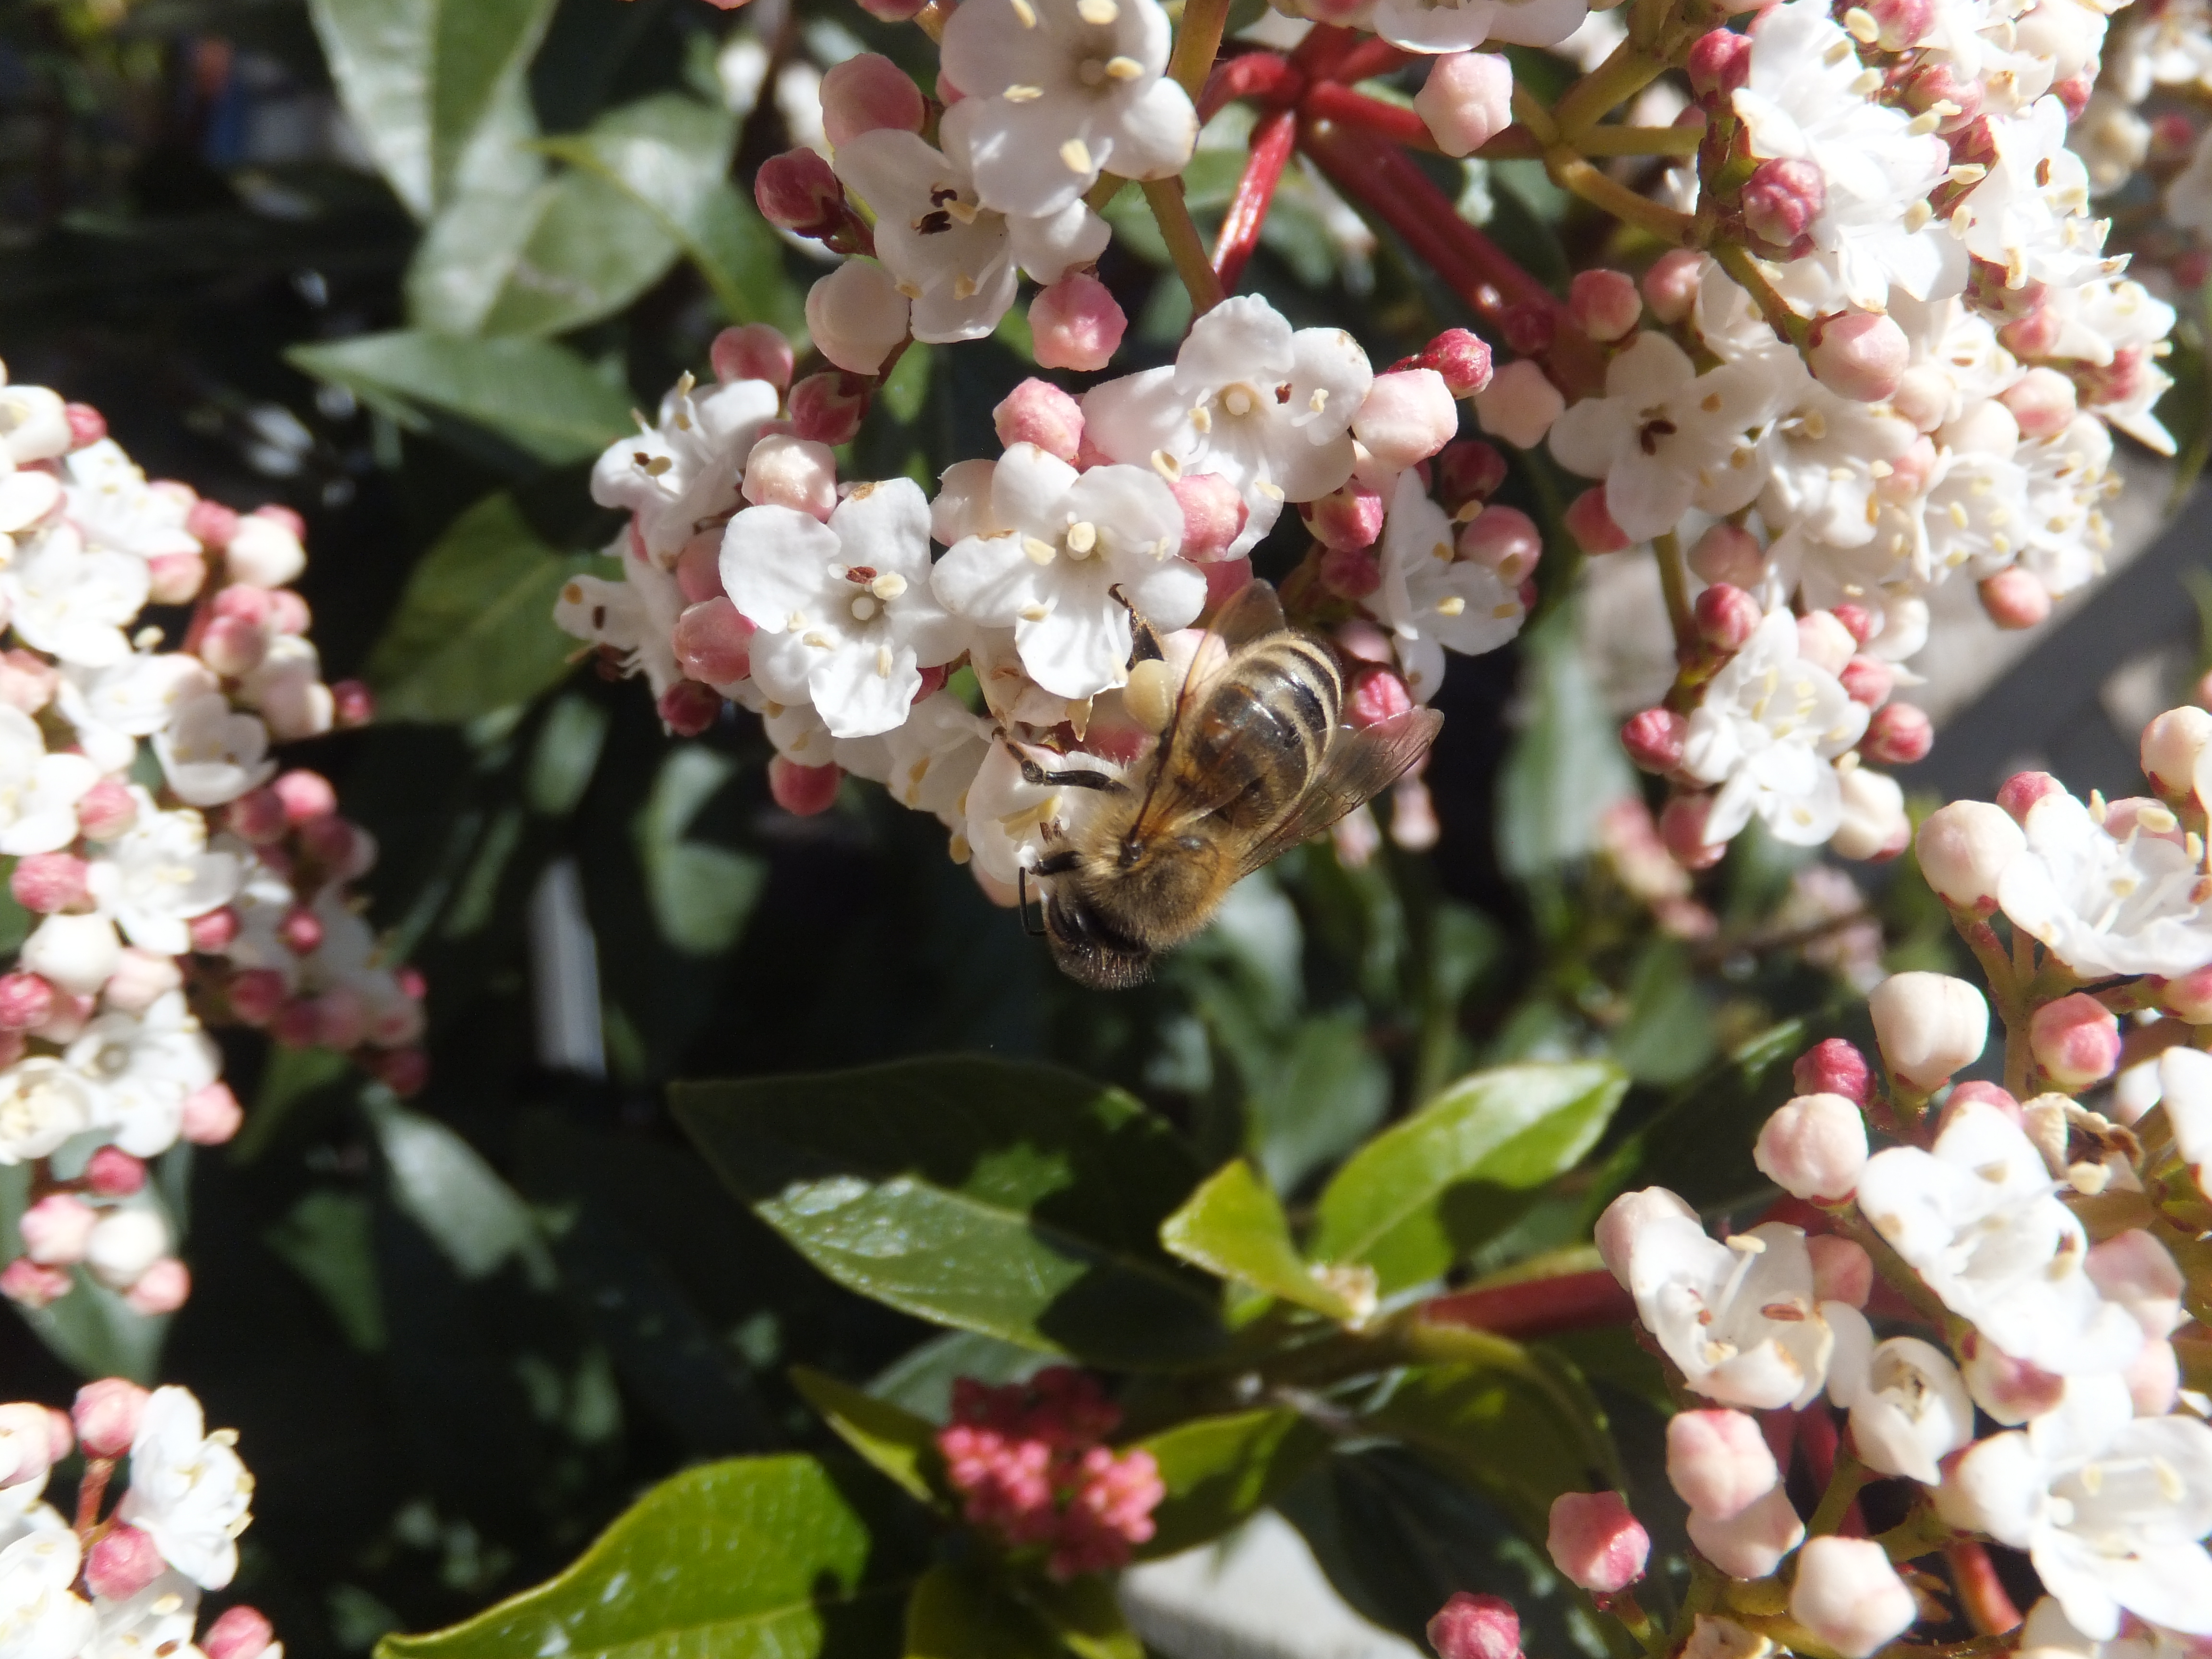 Bees need your garden space! How your garden can support them